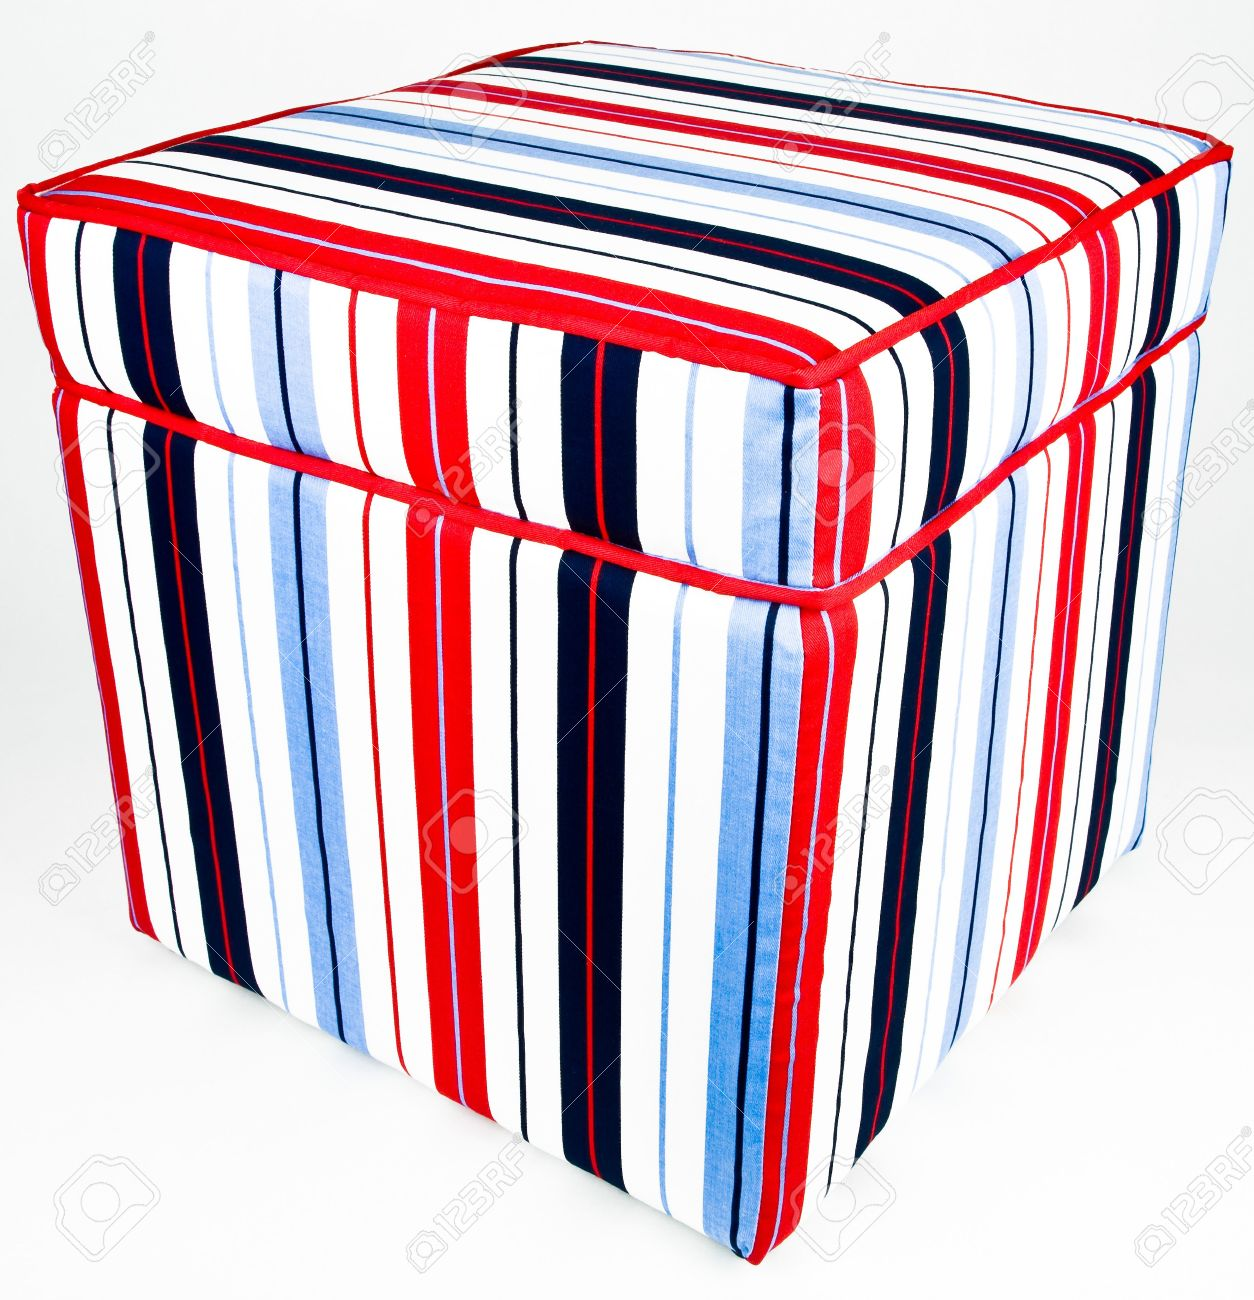 Colorful Cotton Striped Fabric Ottoman Storage Footrest Stock